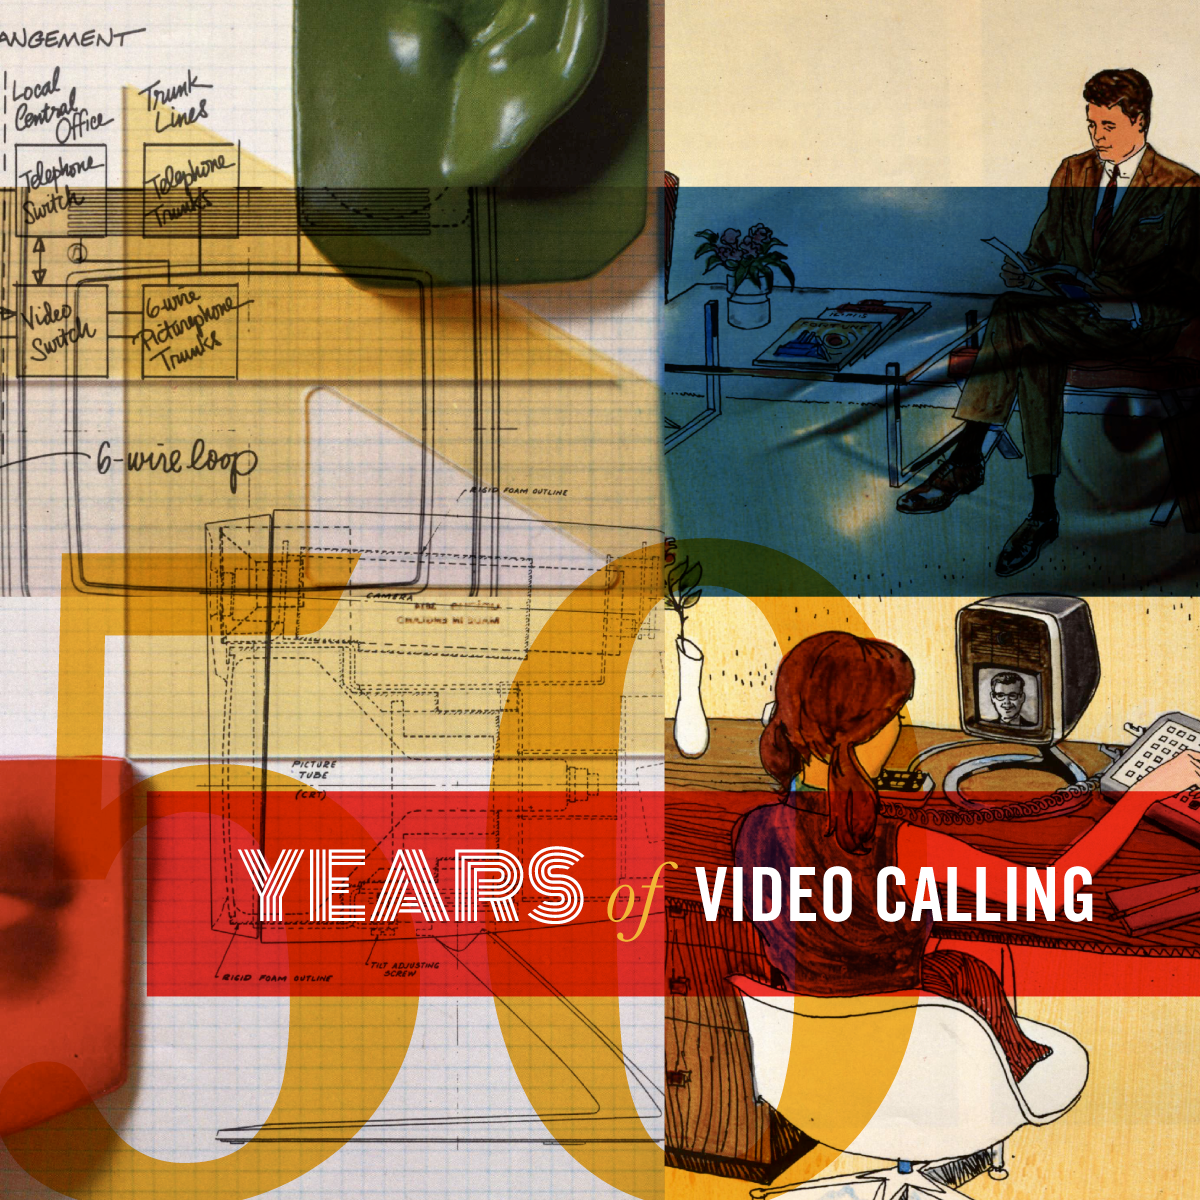 50 Years of Video Calling